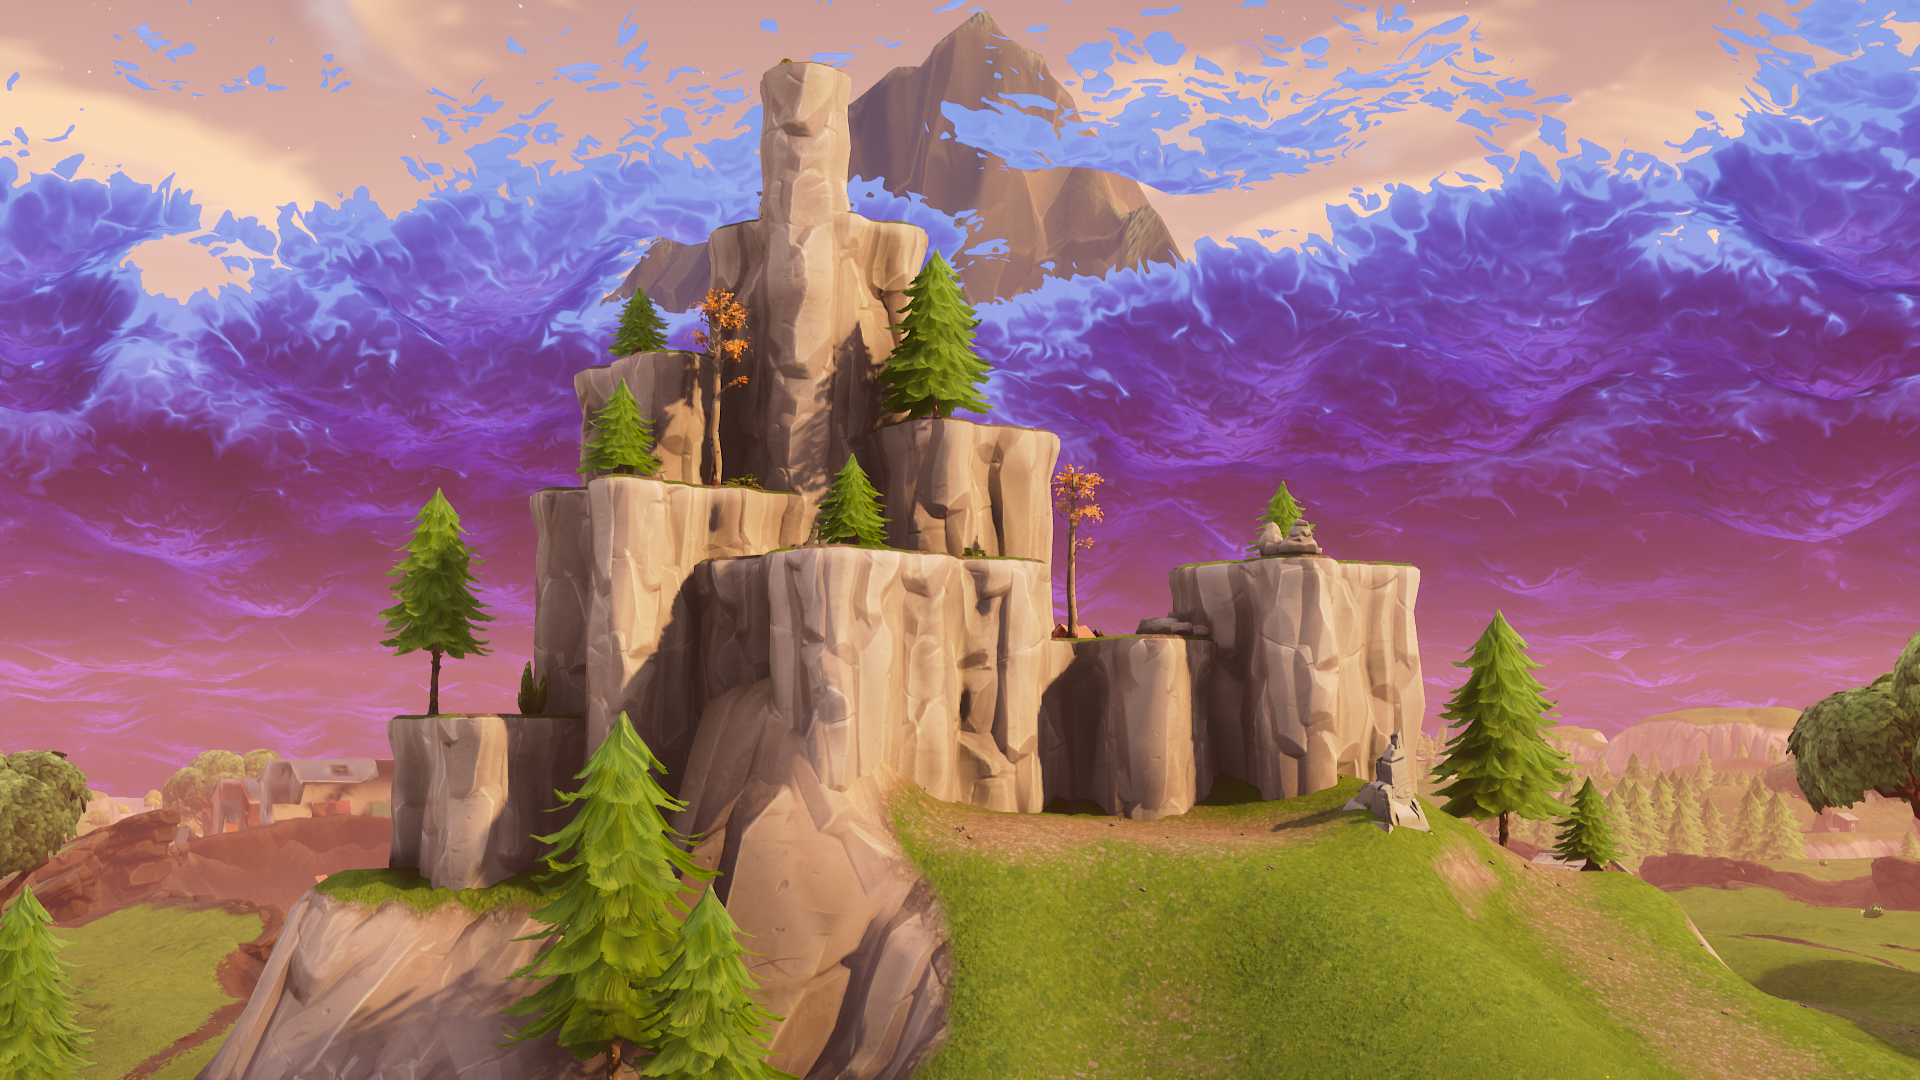 Free Download A Beautiful Place In Fortnite HD Wallpaper Background Image  [1920x1080] For Your Desktop, Mobile & Tablet | Explore 35+ Place  Wallpapers | Wallpaper Place, Place Wallpapers, Best Wallpaper Place